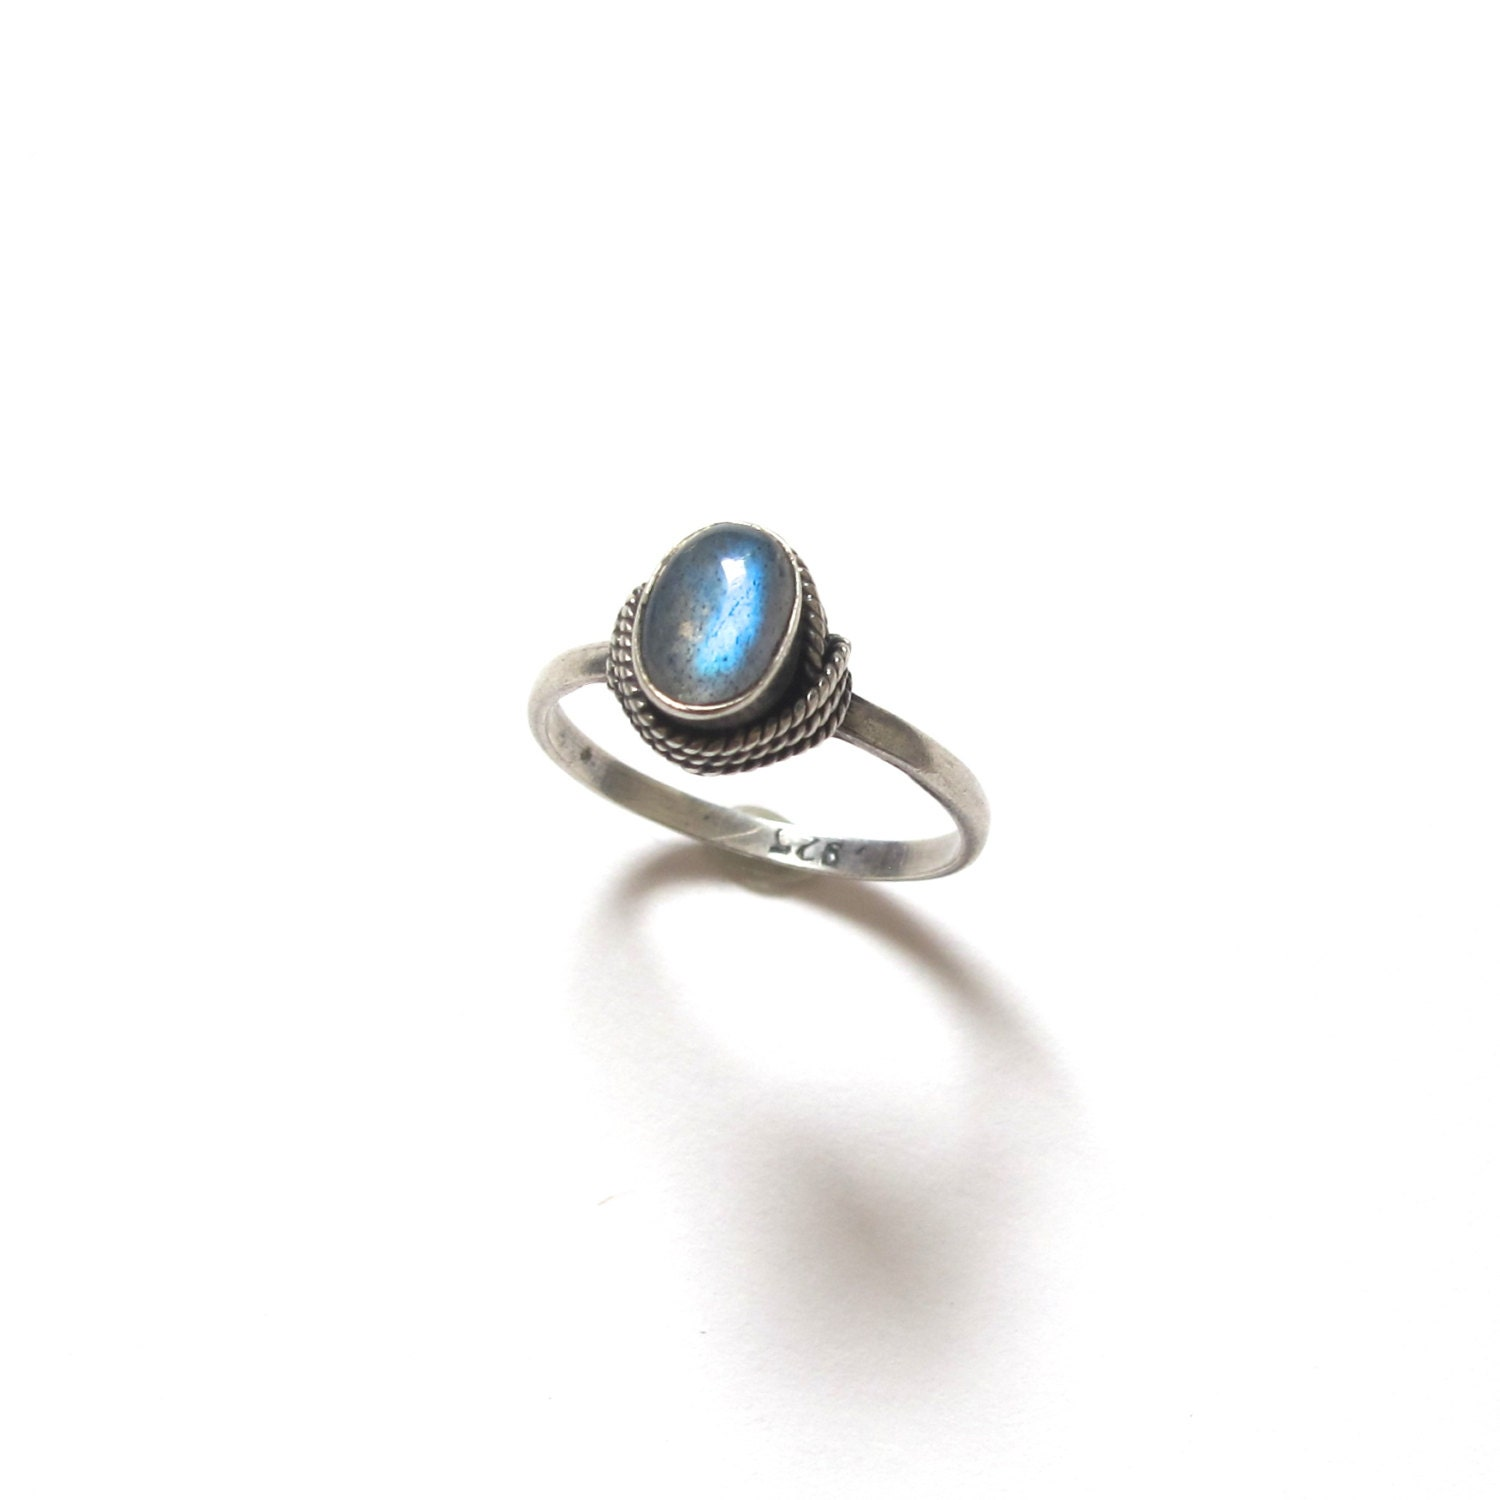 vintage sterling silver labradorite ring by goldeluxe